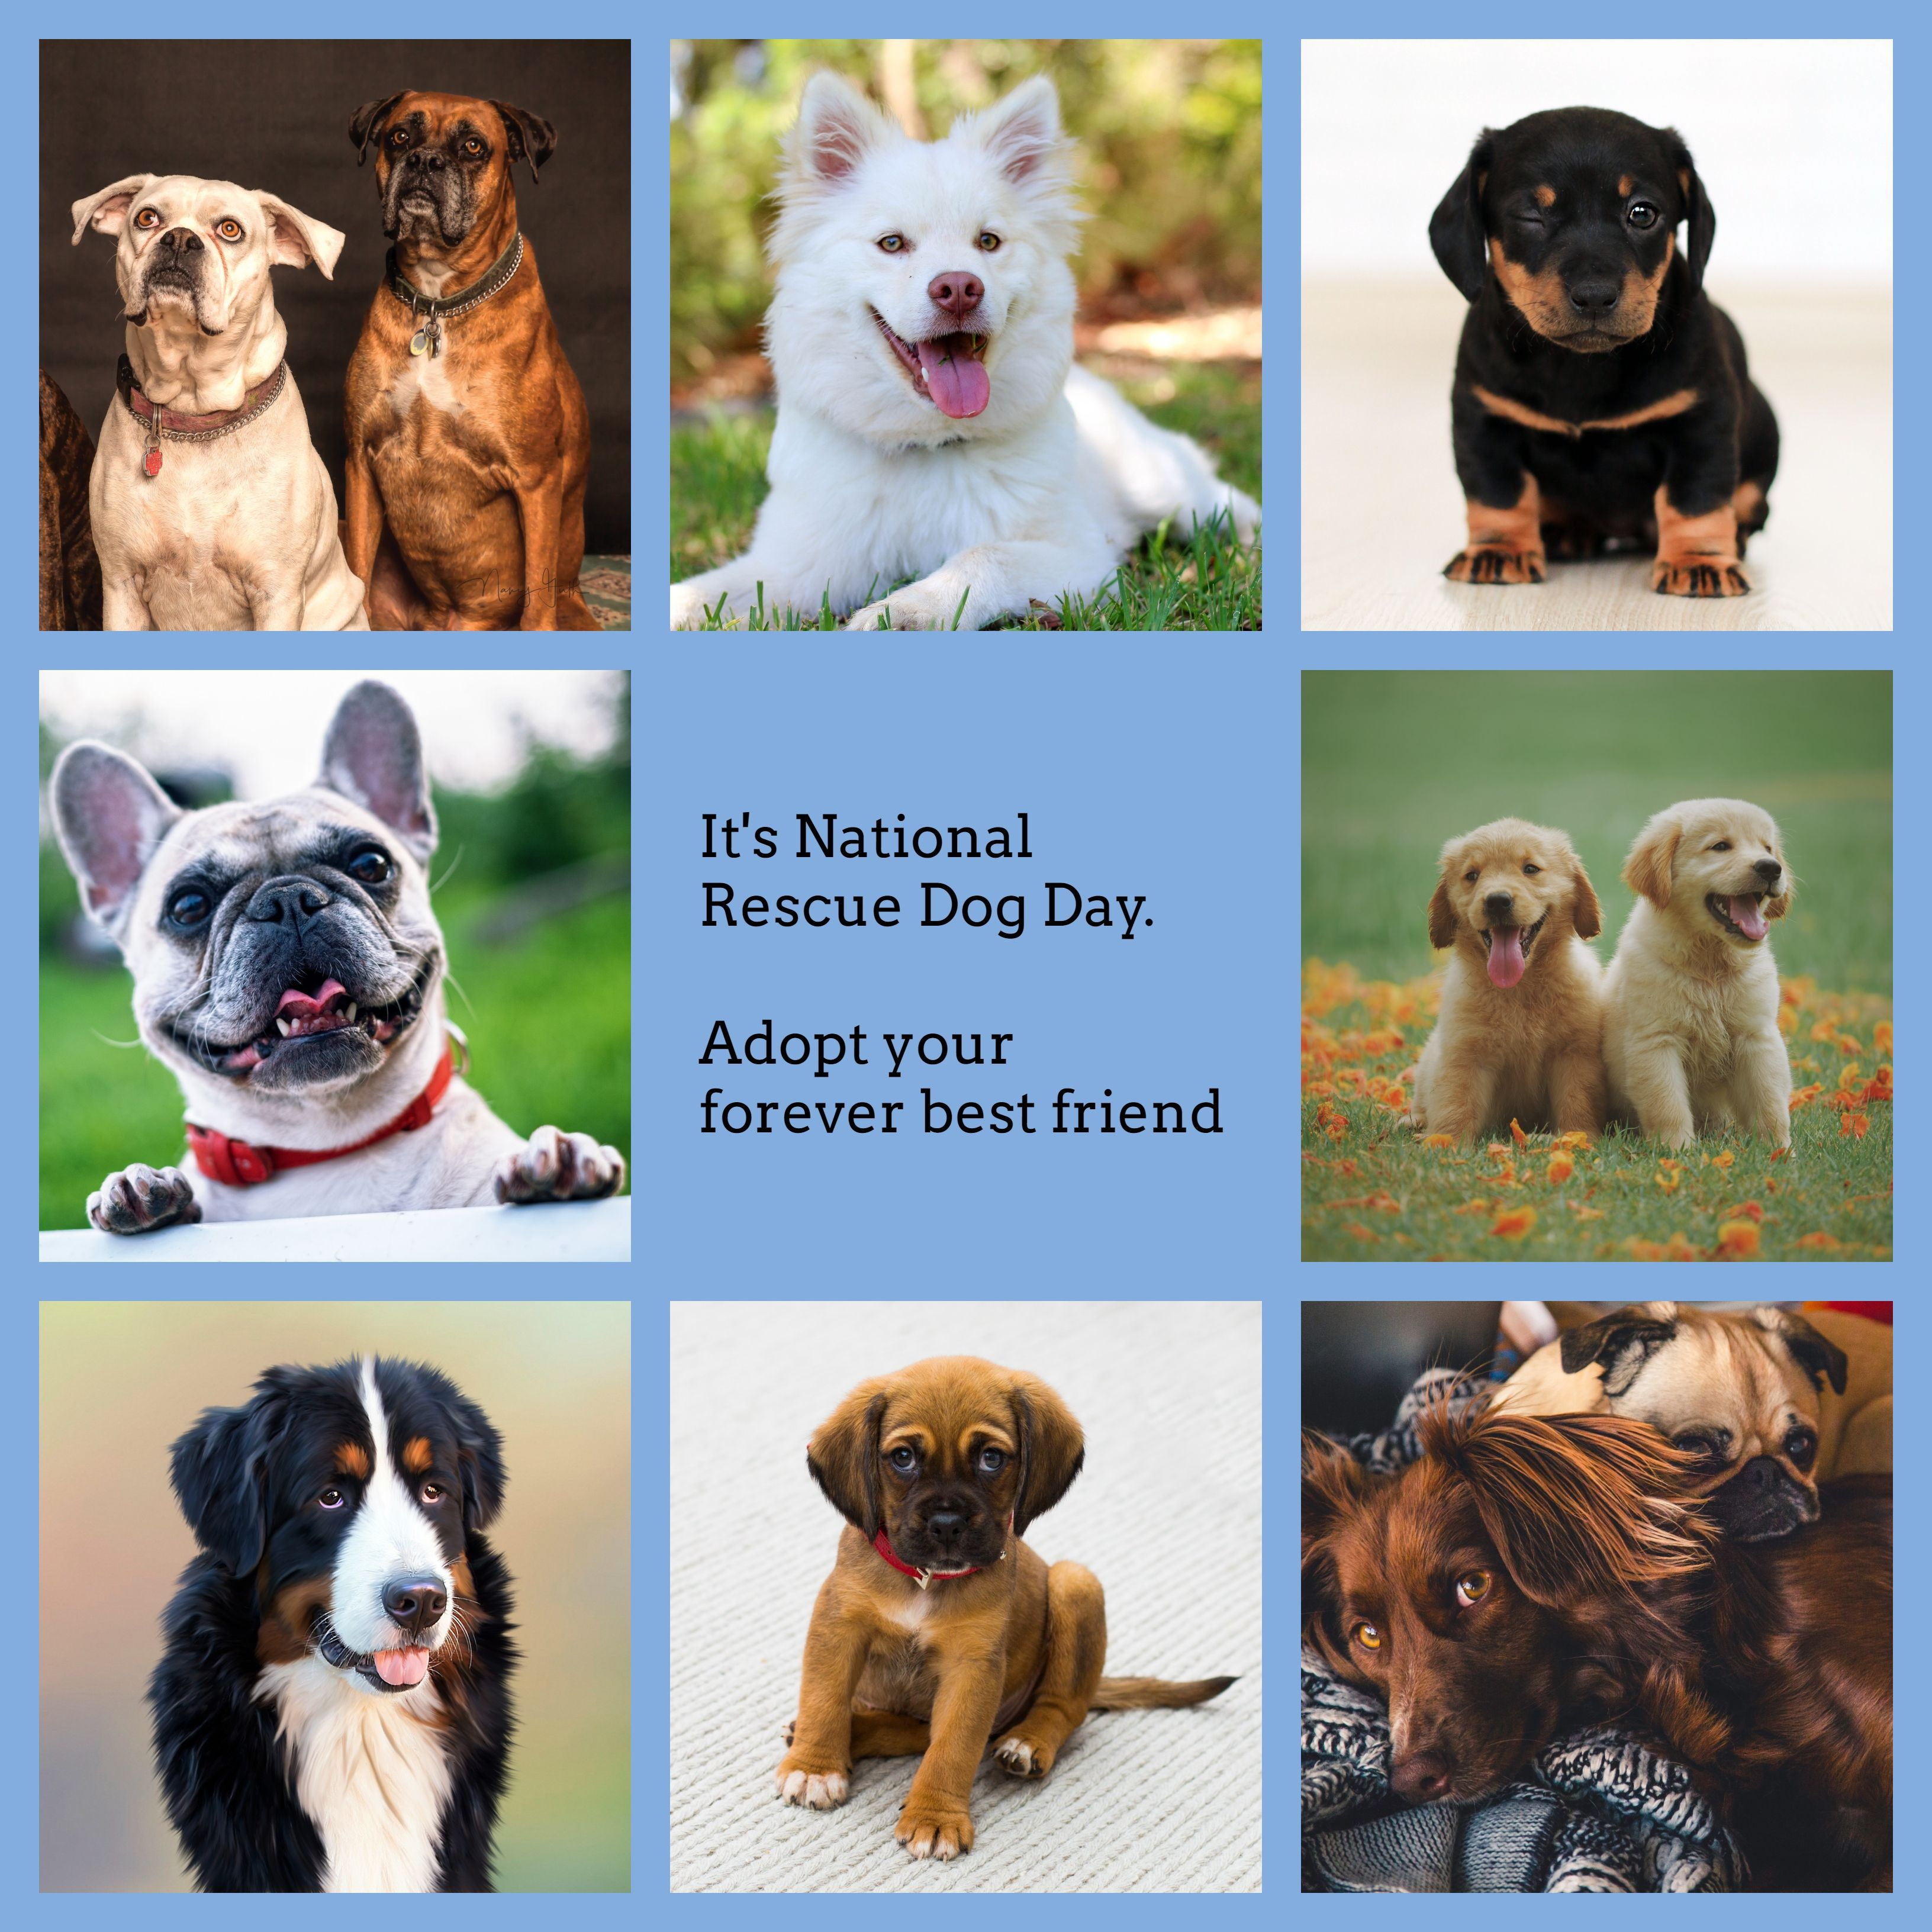 National Rescue Dog Day Rescue Dogs Little Dogs Dogs